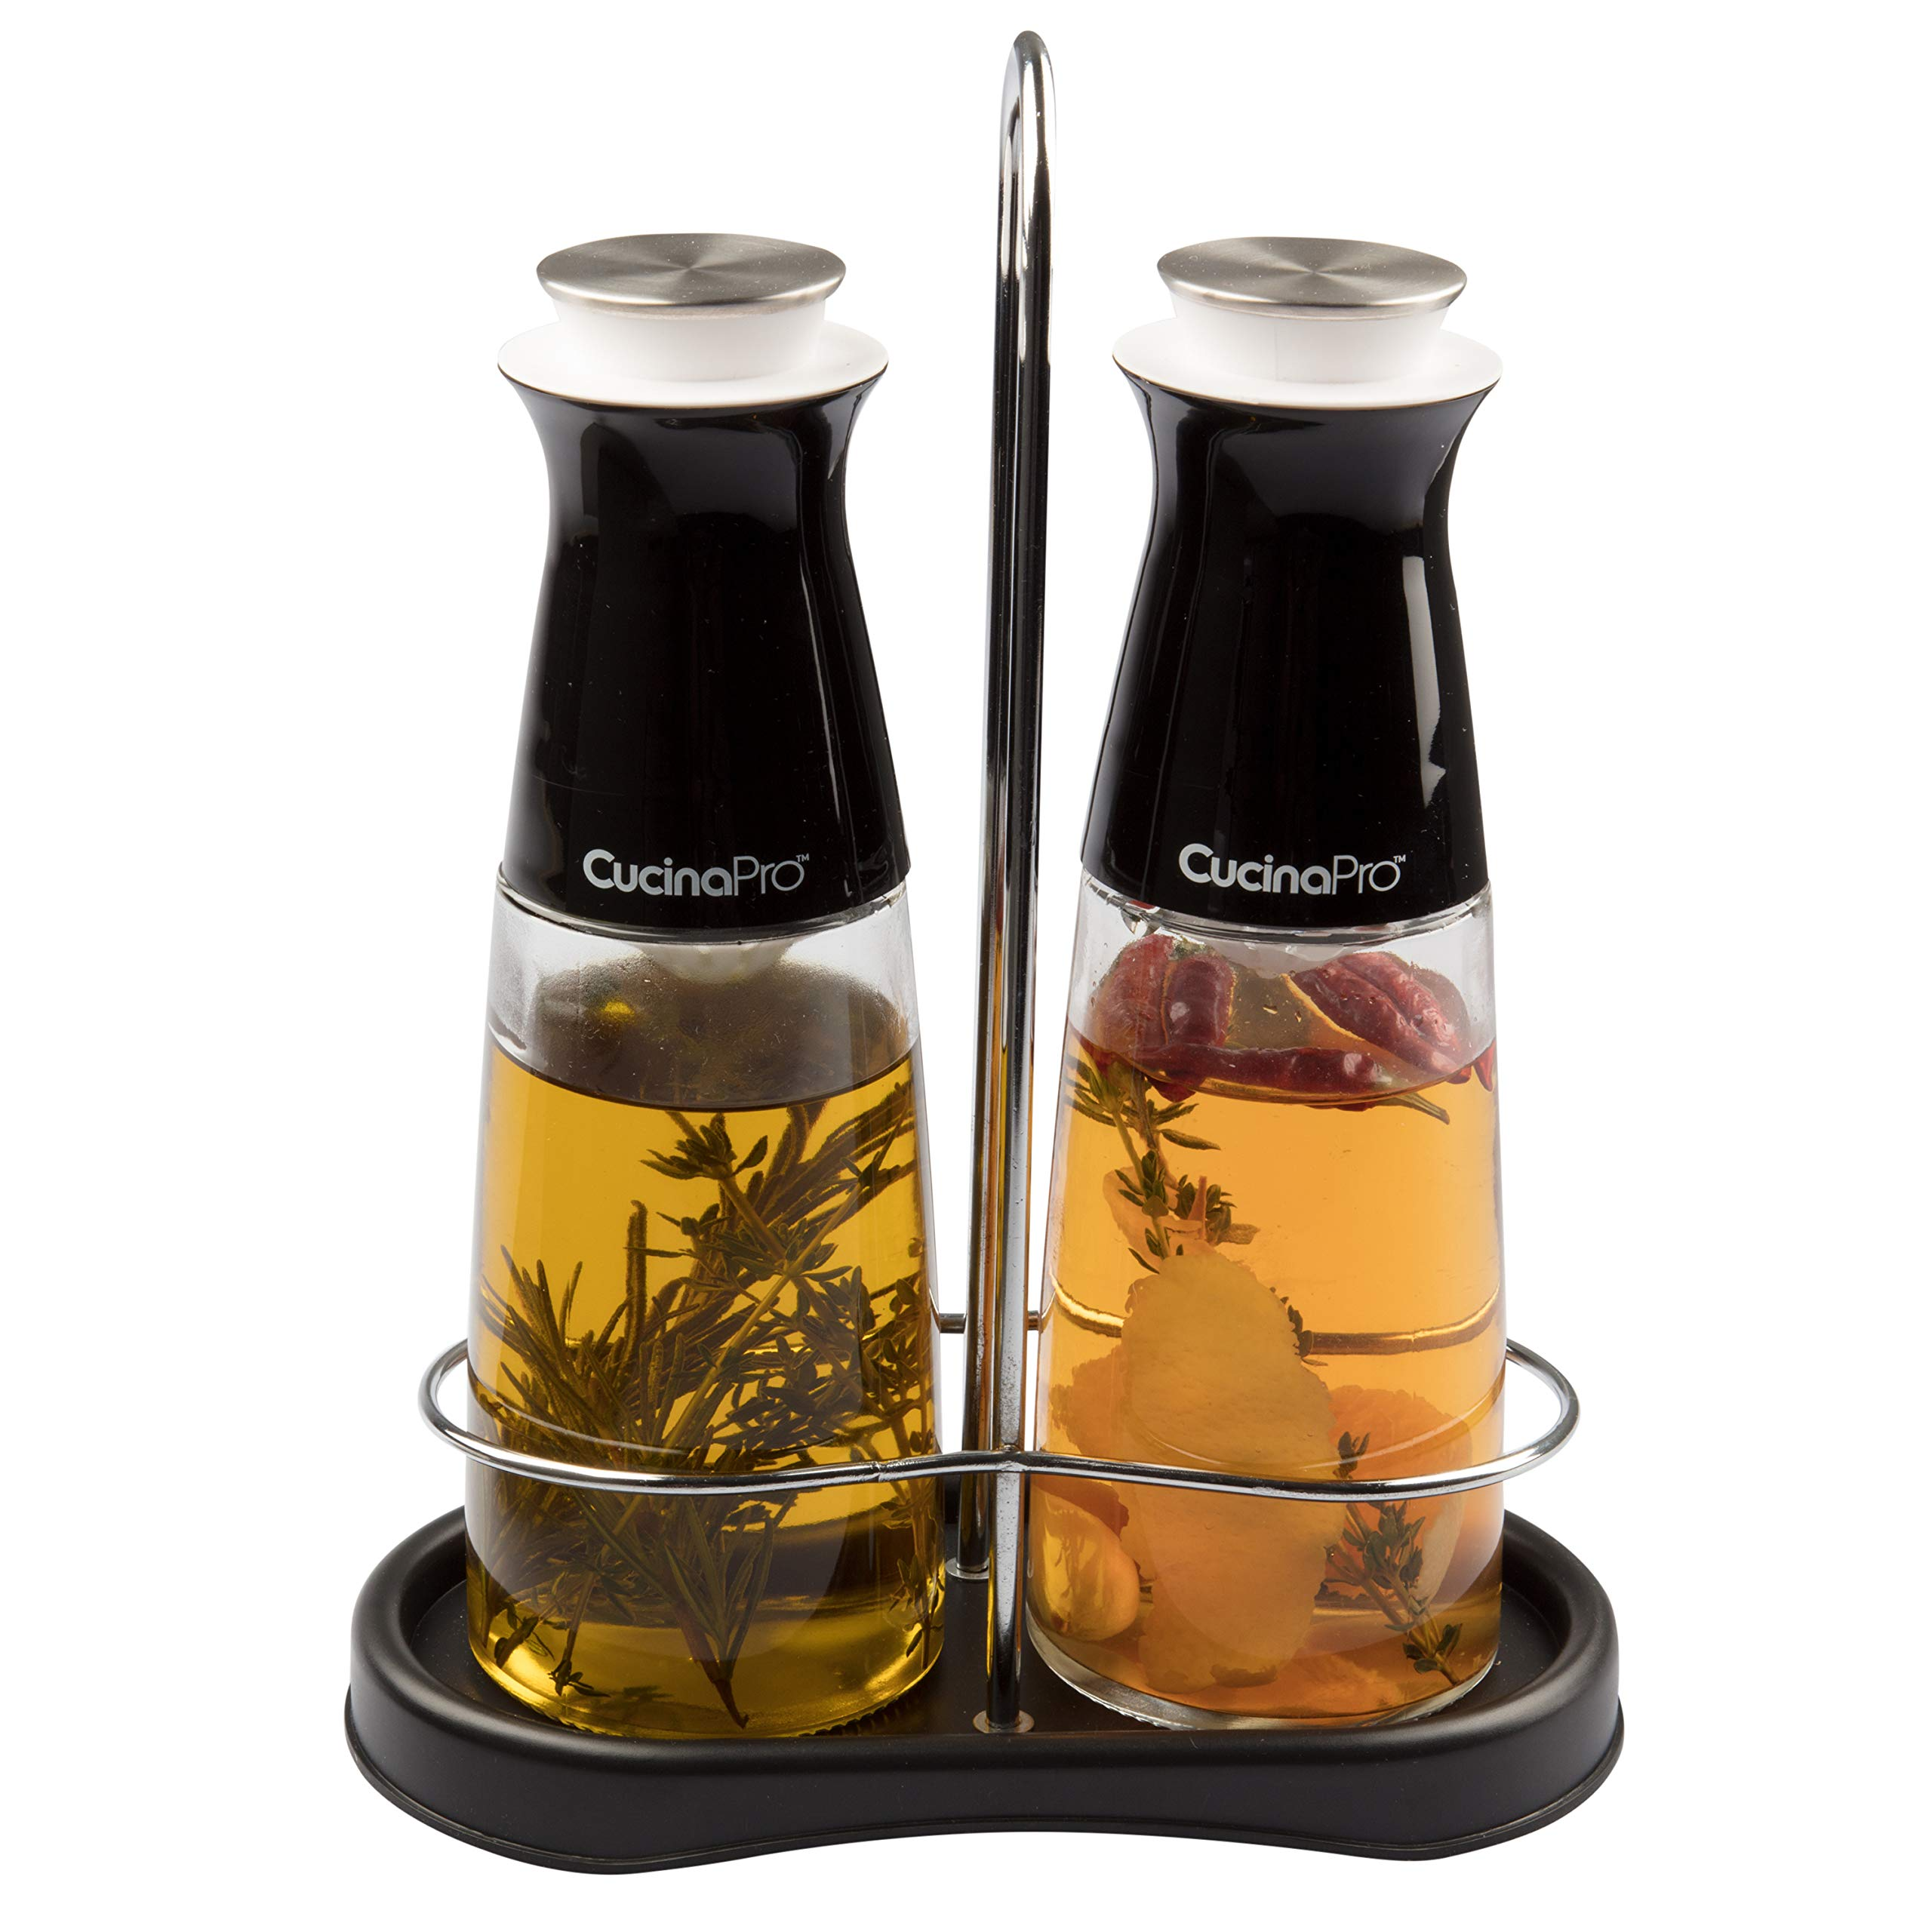 Olive Oil and Vinegar Infuser Bottle Dispenser Set of 2- Glass Dual Cruet Set (10 oz) w Built In Filter for Infusion and Clean Pouring- Storage Rack and Olive Oil/Vinegar Recipes Included by CucinaPro (Image #4)